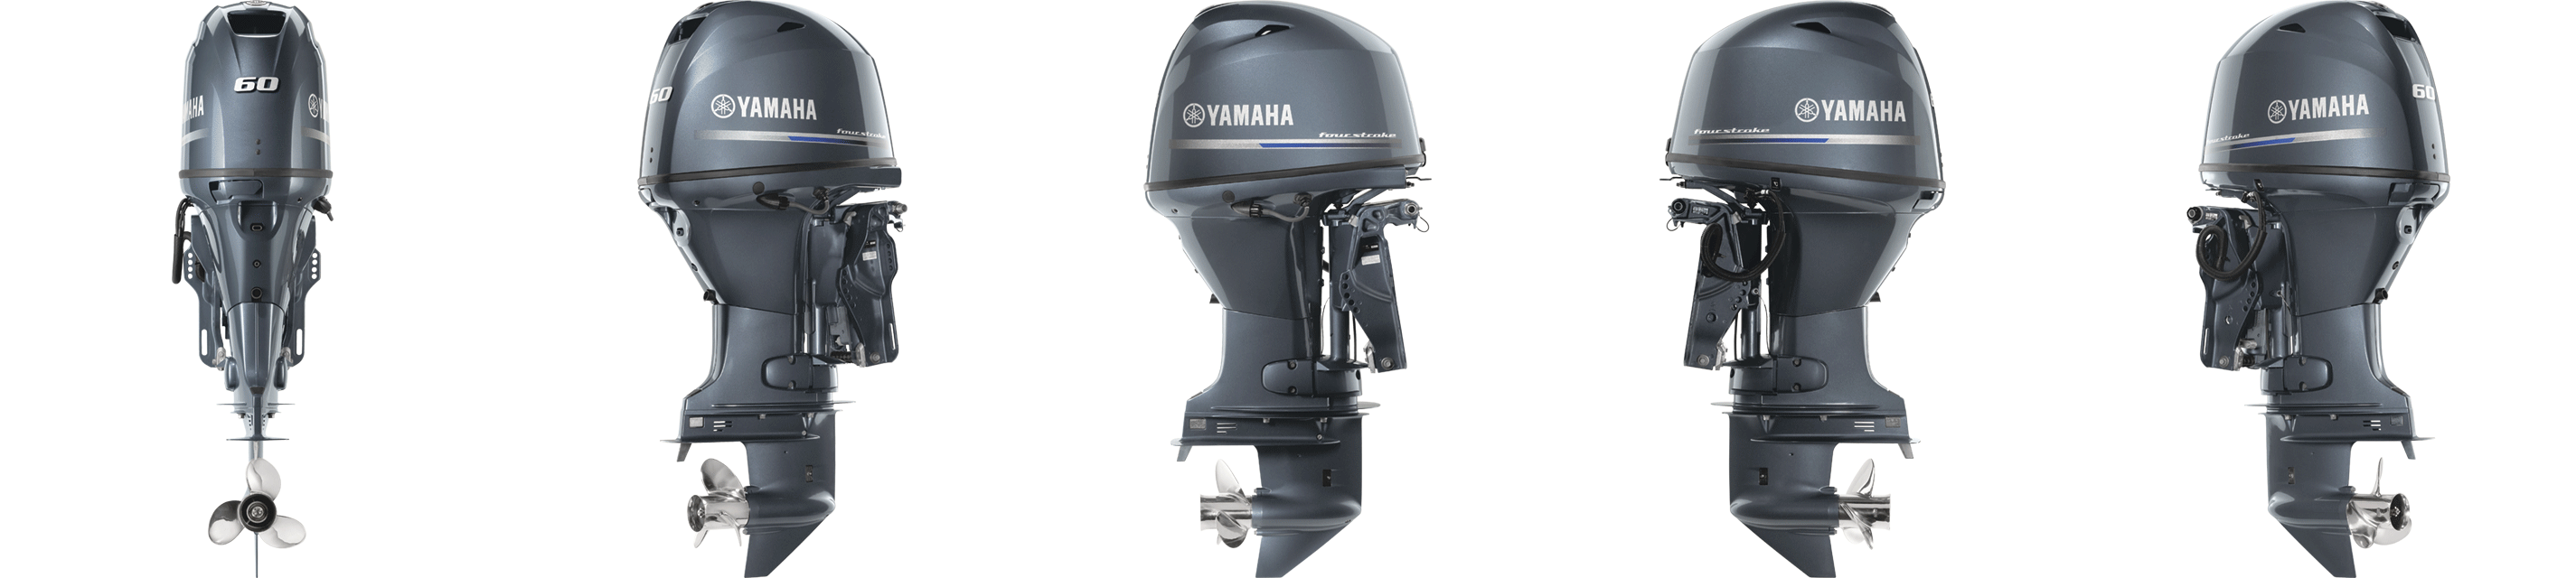 Outboards 70 To 50 Hp 1l Midrange Yamaha Aviation Knee Key Systems Wiring Diagram And Is Measured Without Motor Oil Gearcase Propeller Except Models 25 Under Which Include A Standard